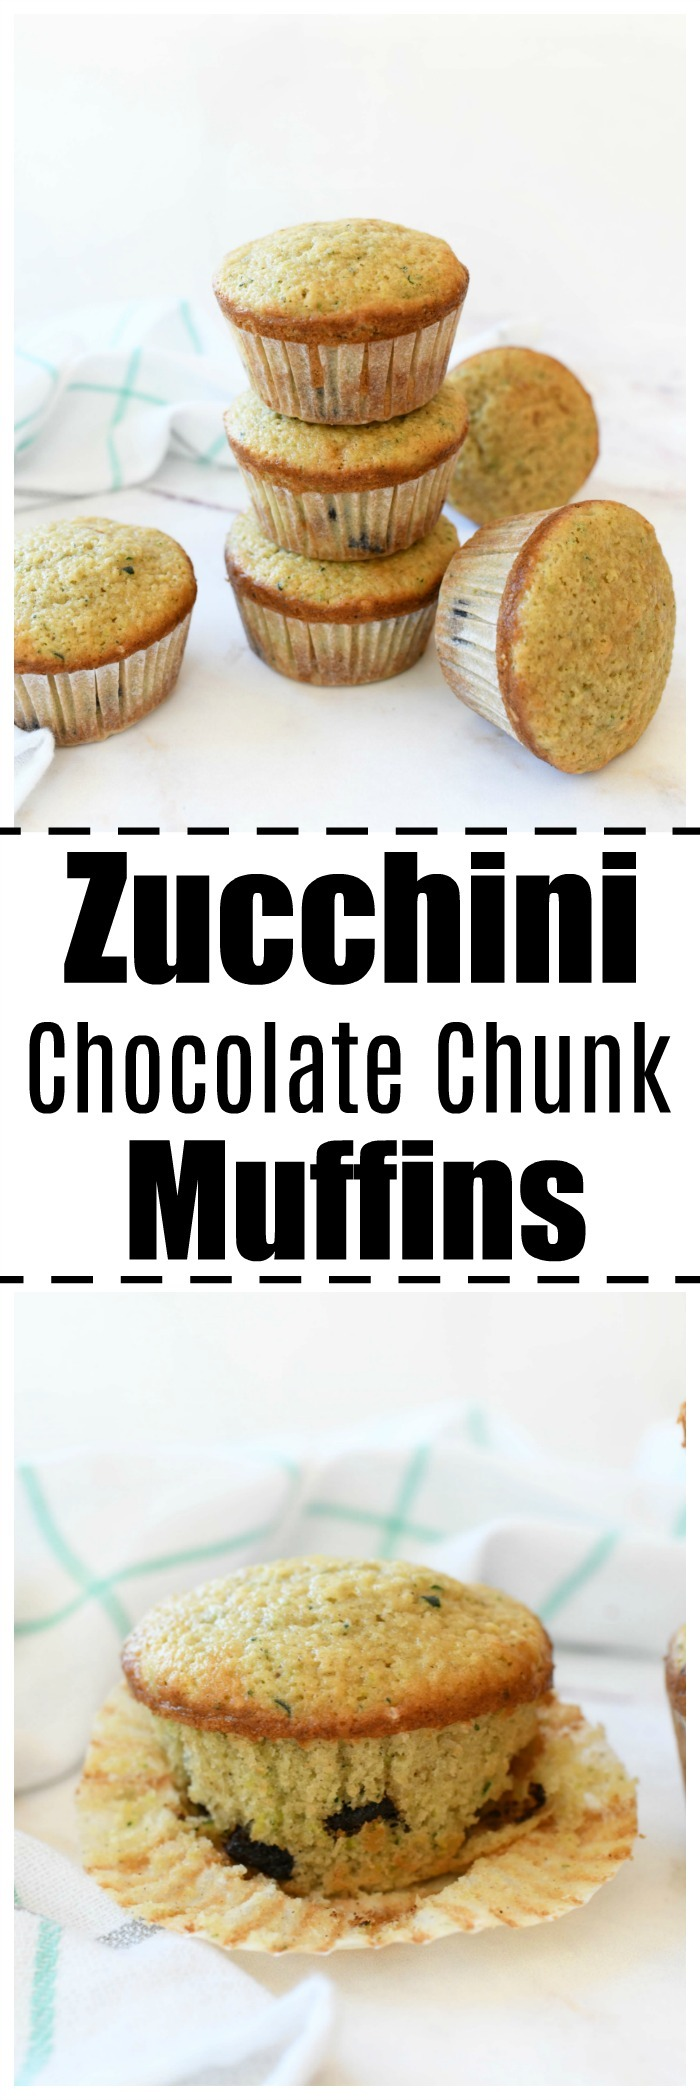 Zucchini Chocolate Chip Muffins (So Moist!)